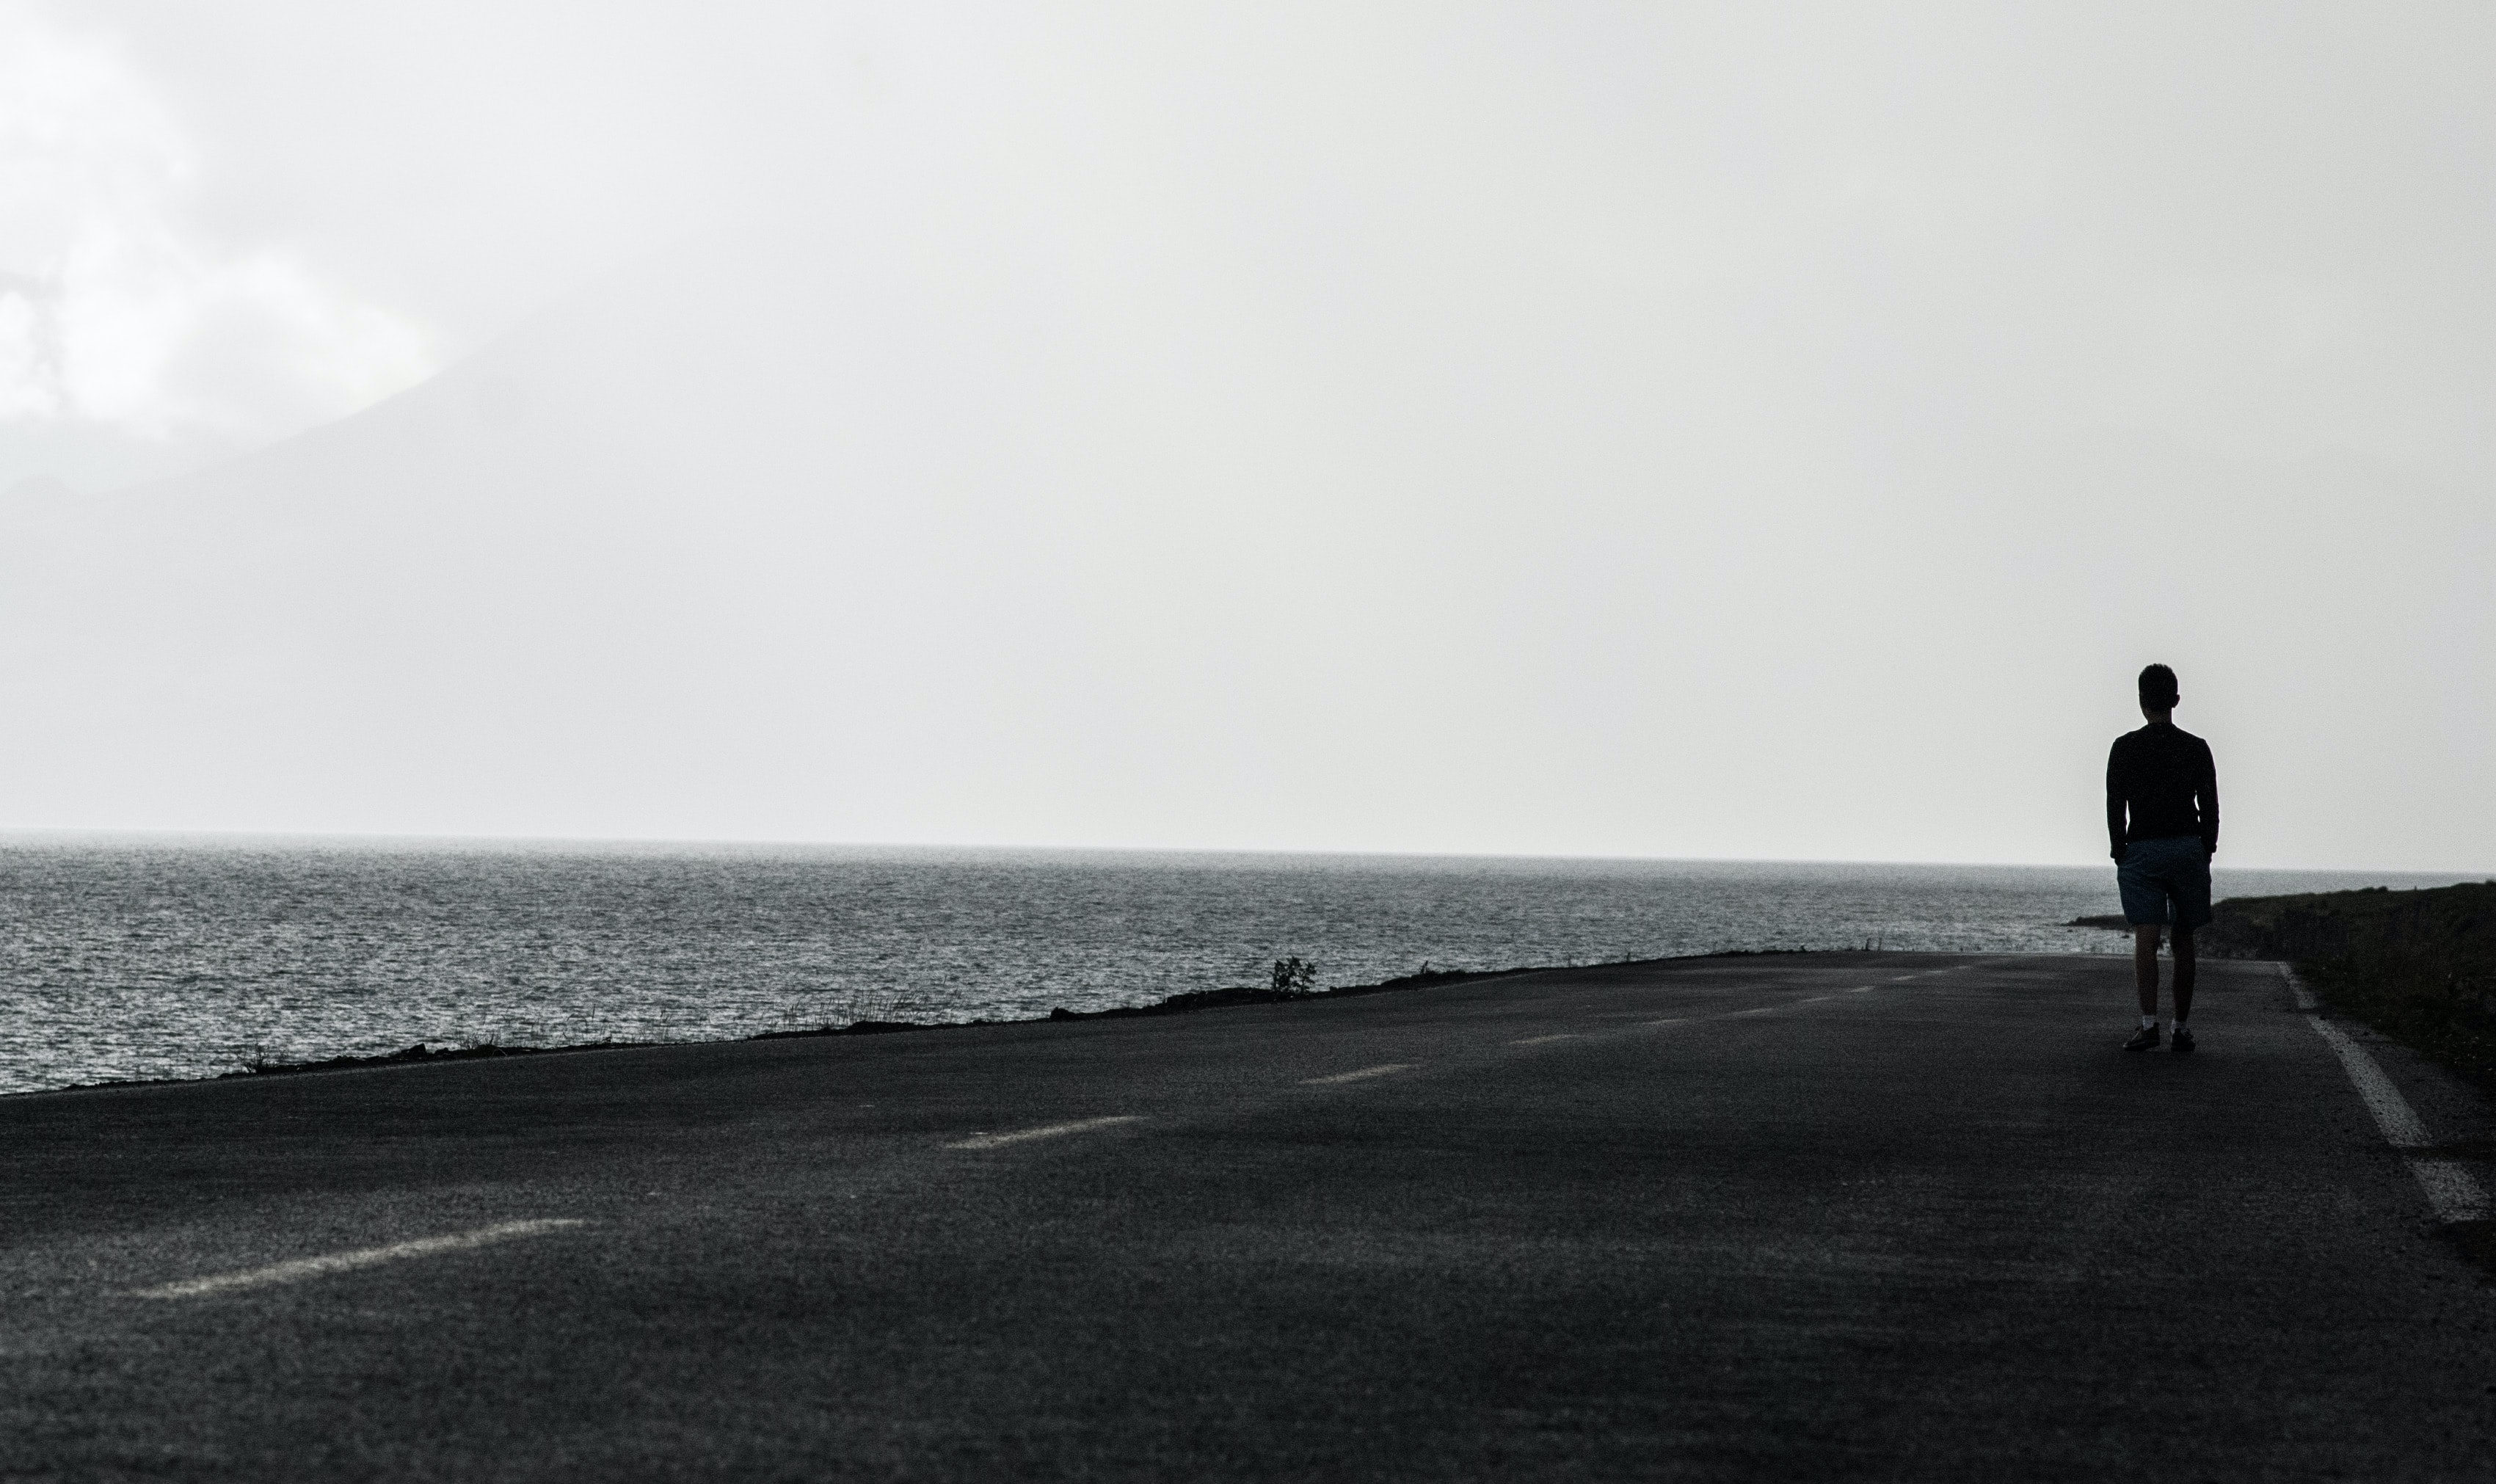 Black and white shot of lonely person walking on road near sea with clear sky